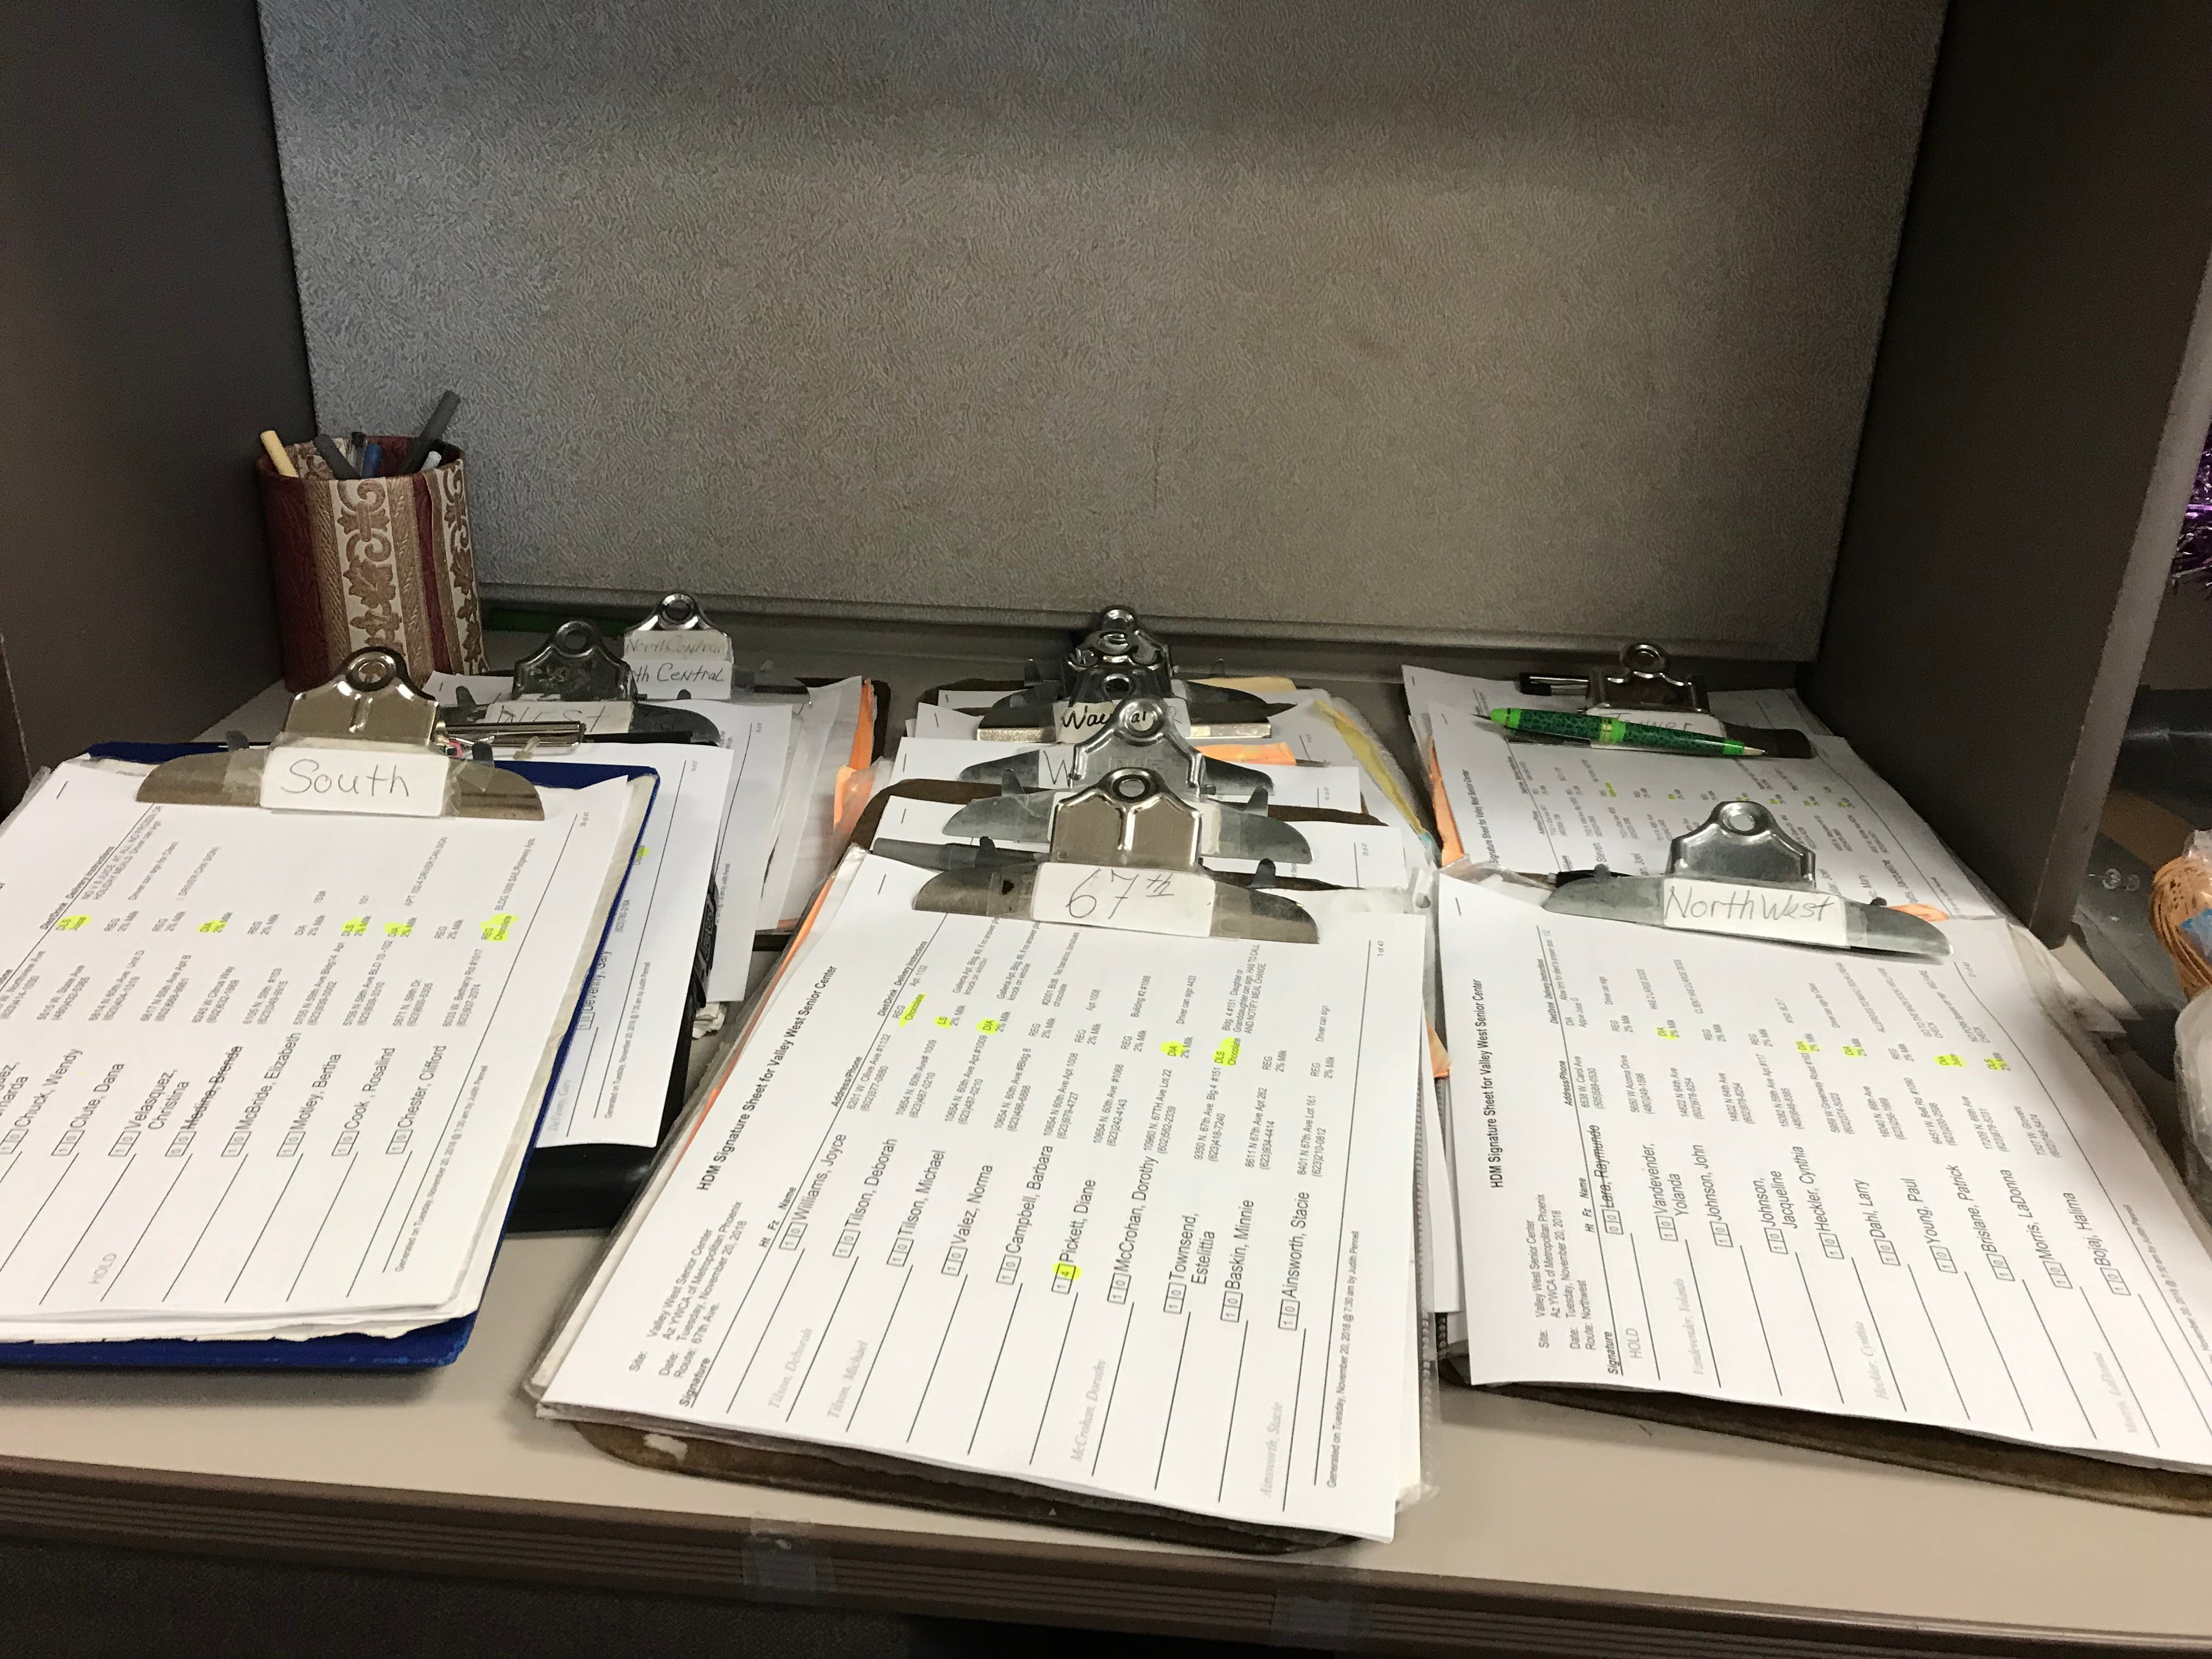 Clipboards containing the  checklists for that day's routes wait for drivers inside the Meals on Wheels office.